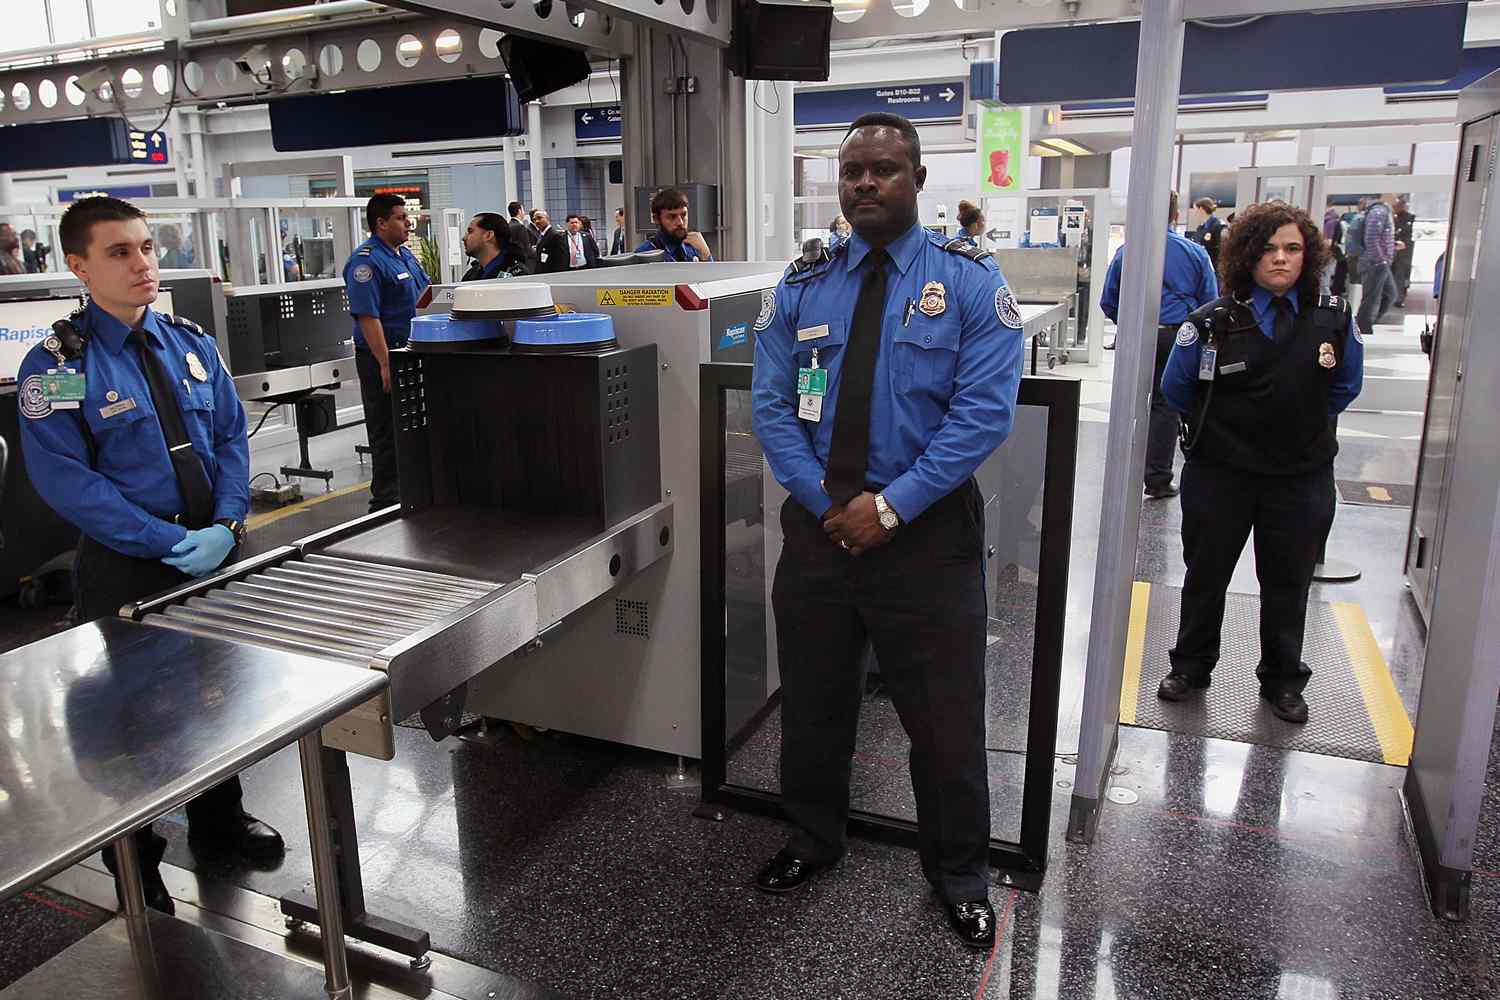 Airport security officers standing at attention